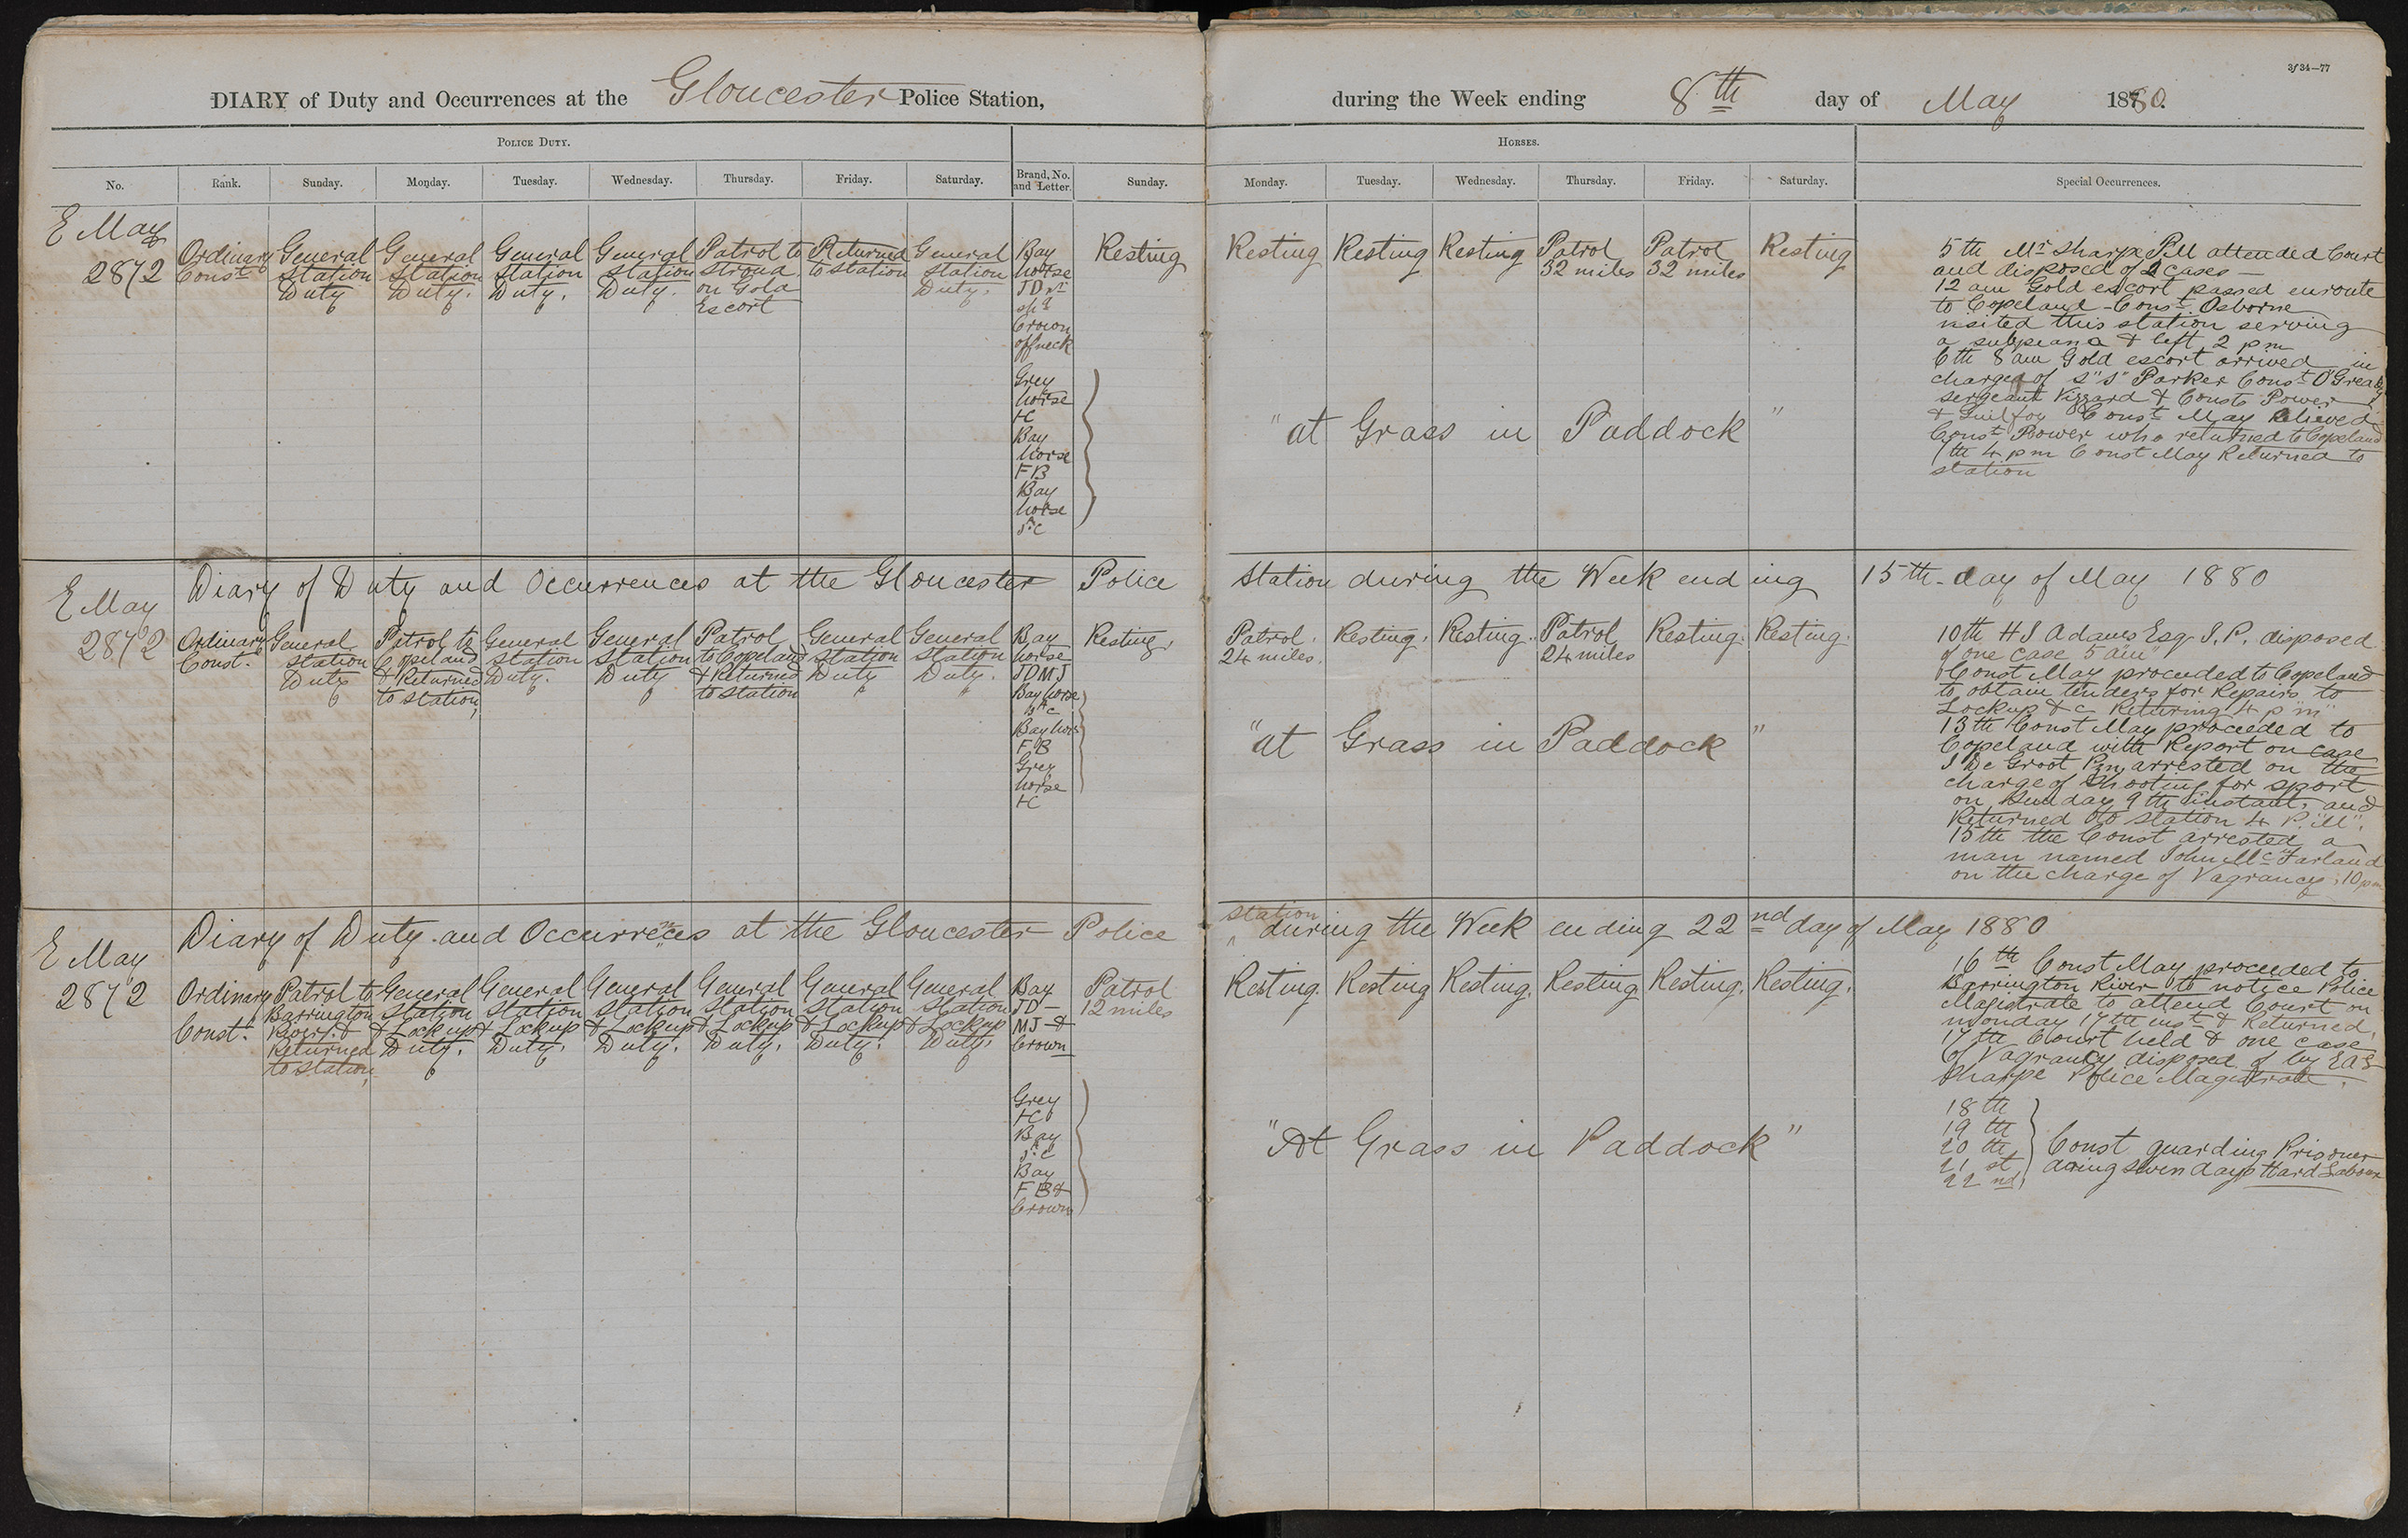 Diary of duty and occurrences at the Gloucester Police Station during the week ending the 8th day of May 1880